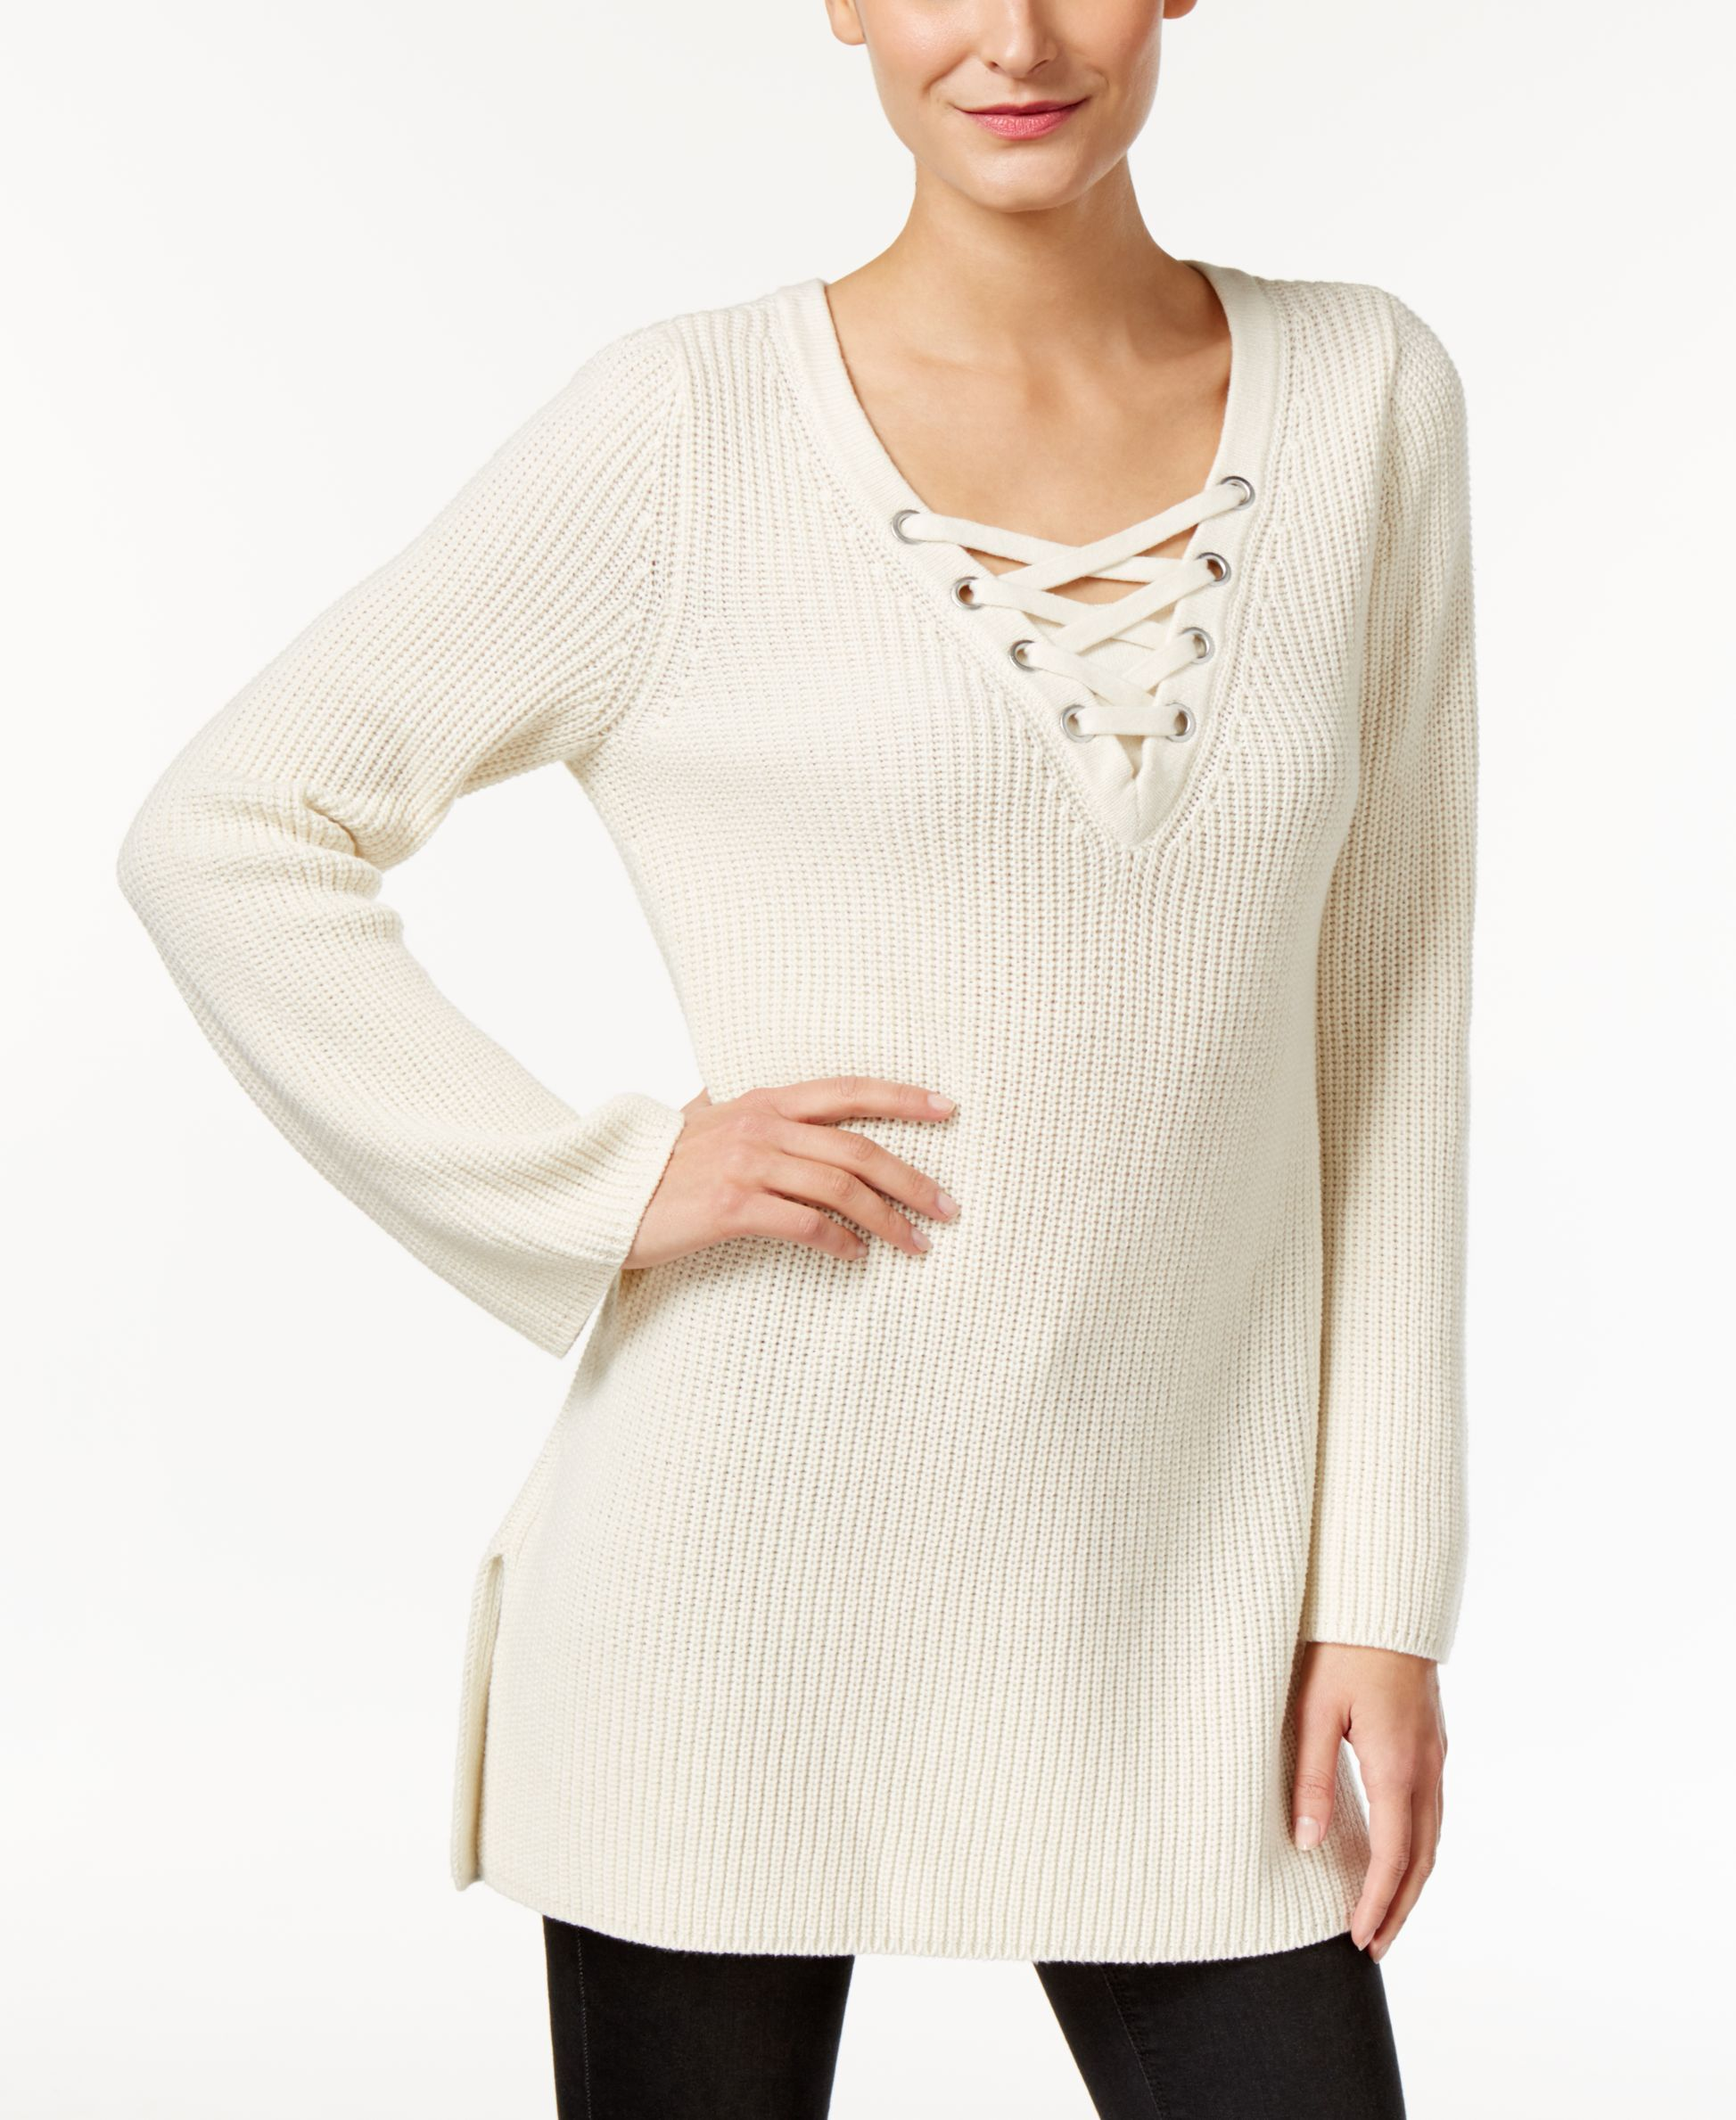 Style & Co. Lace-Up Tunic Sweater, Only at Macy's | Outfits ...